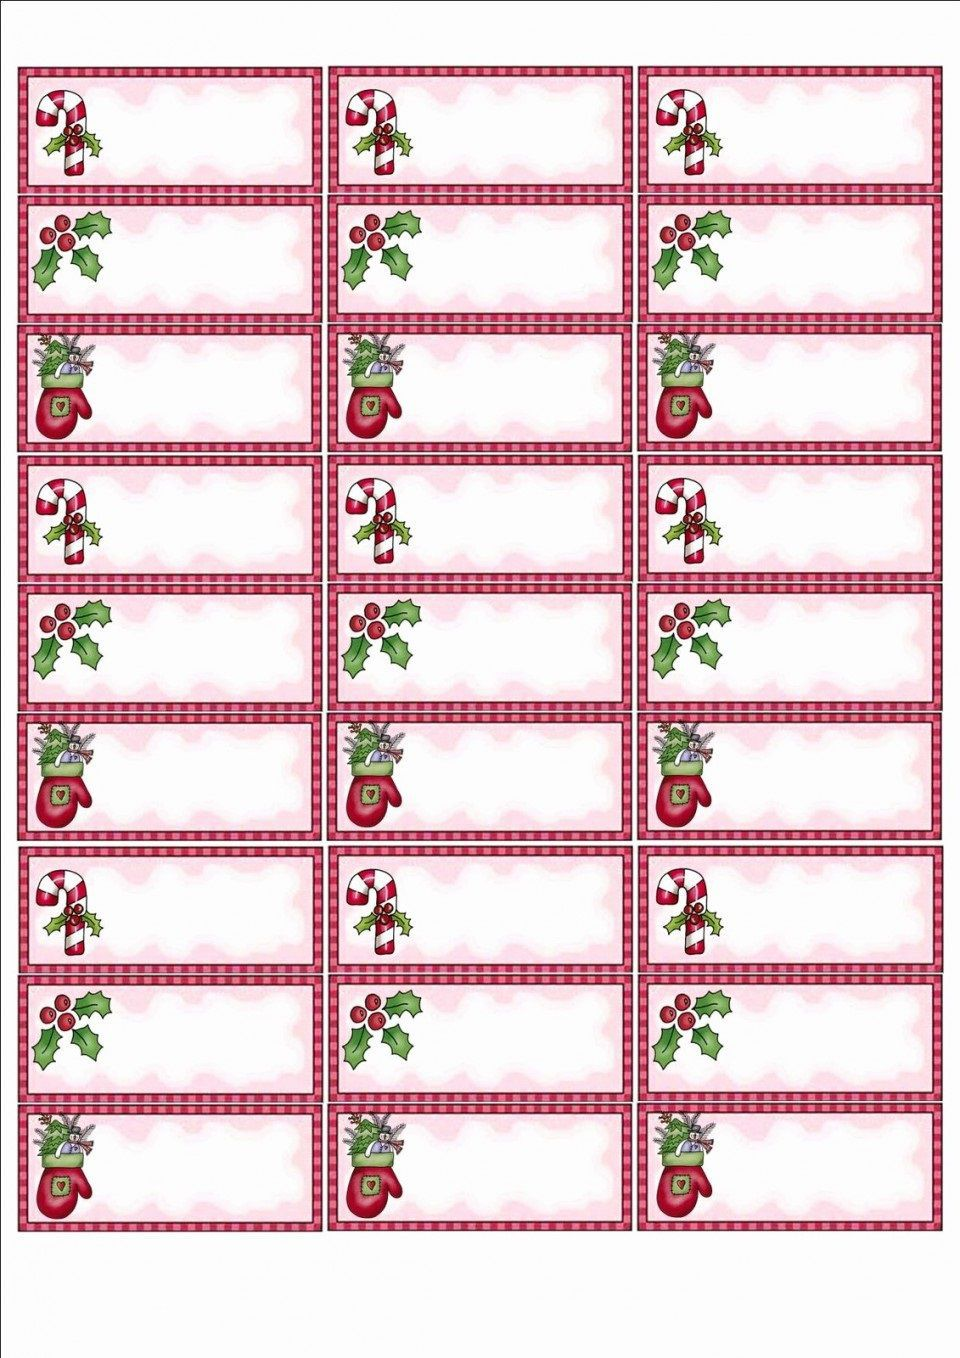 006 Awful Free Christma Addres Label Template Avery 5160 Example Full